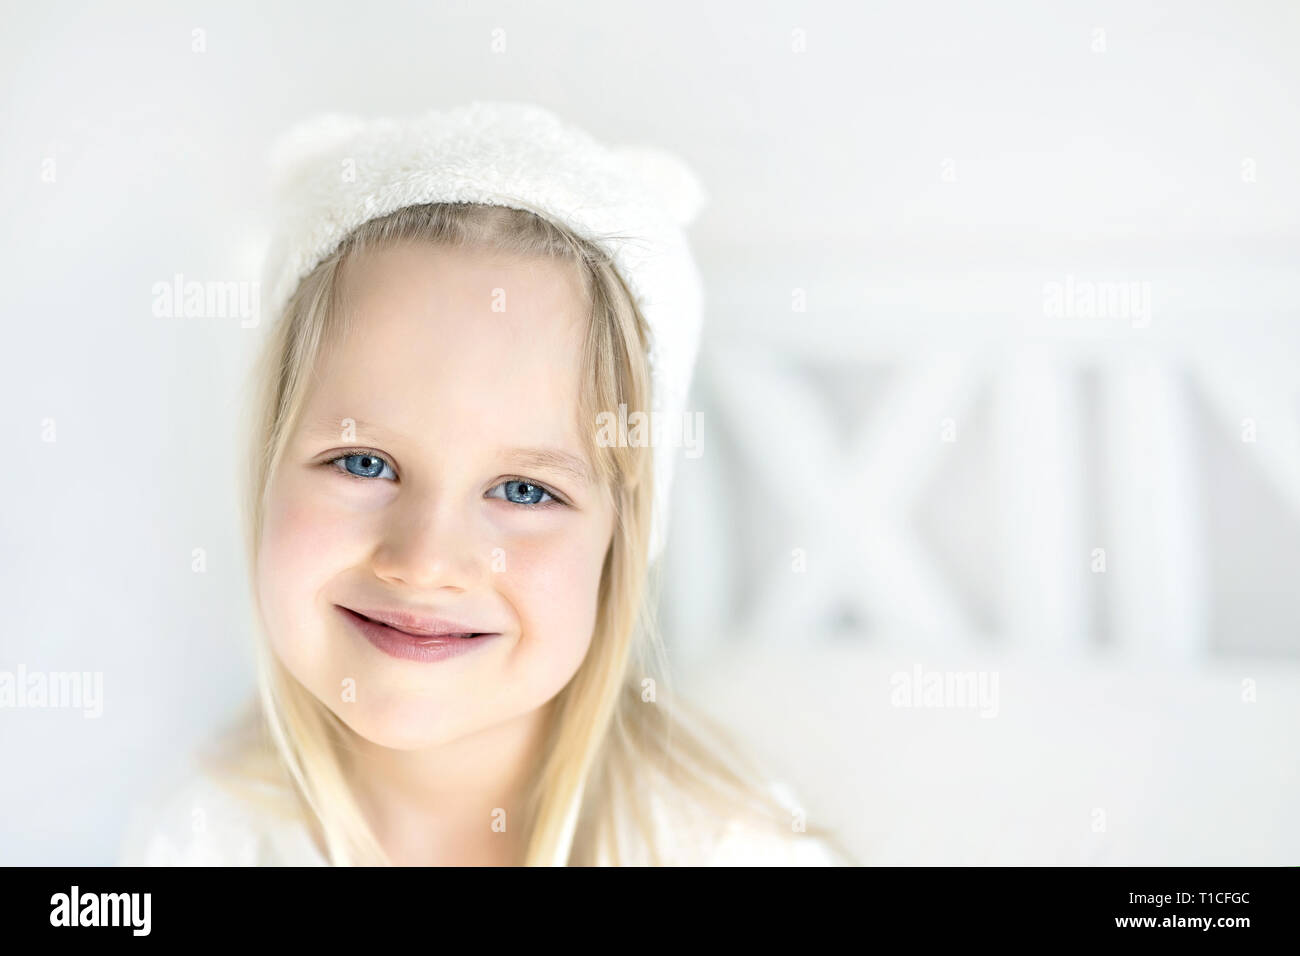 Portrait cute blond preschooler girl. Smilling kid in white hat. Child on bed in nursery room. Adorable baby wearing funny hat with small ears. Happy  - Stock Image